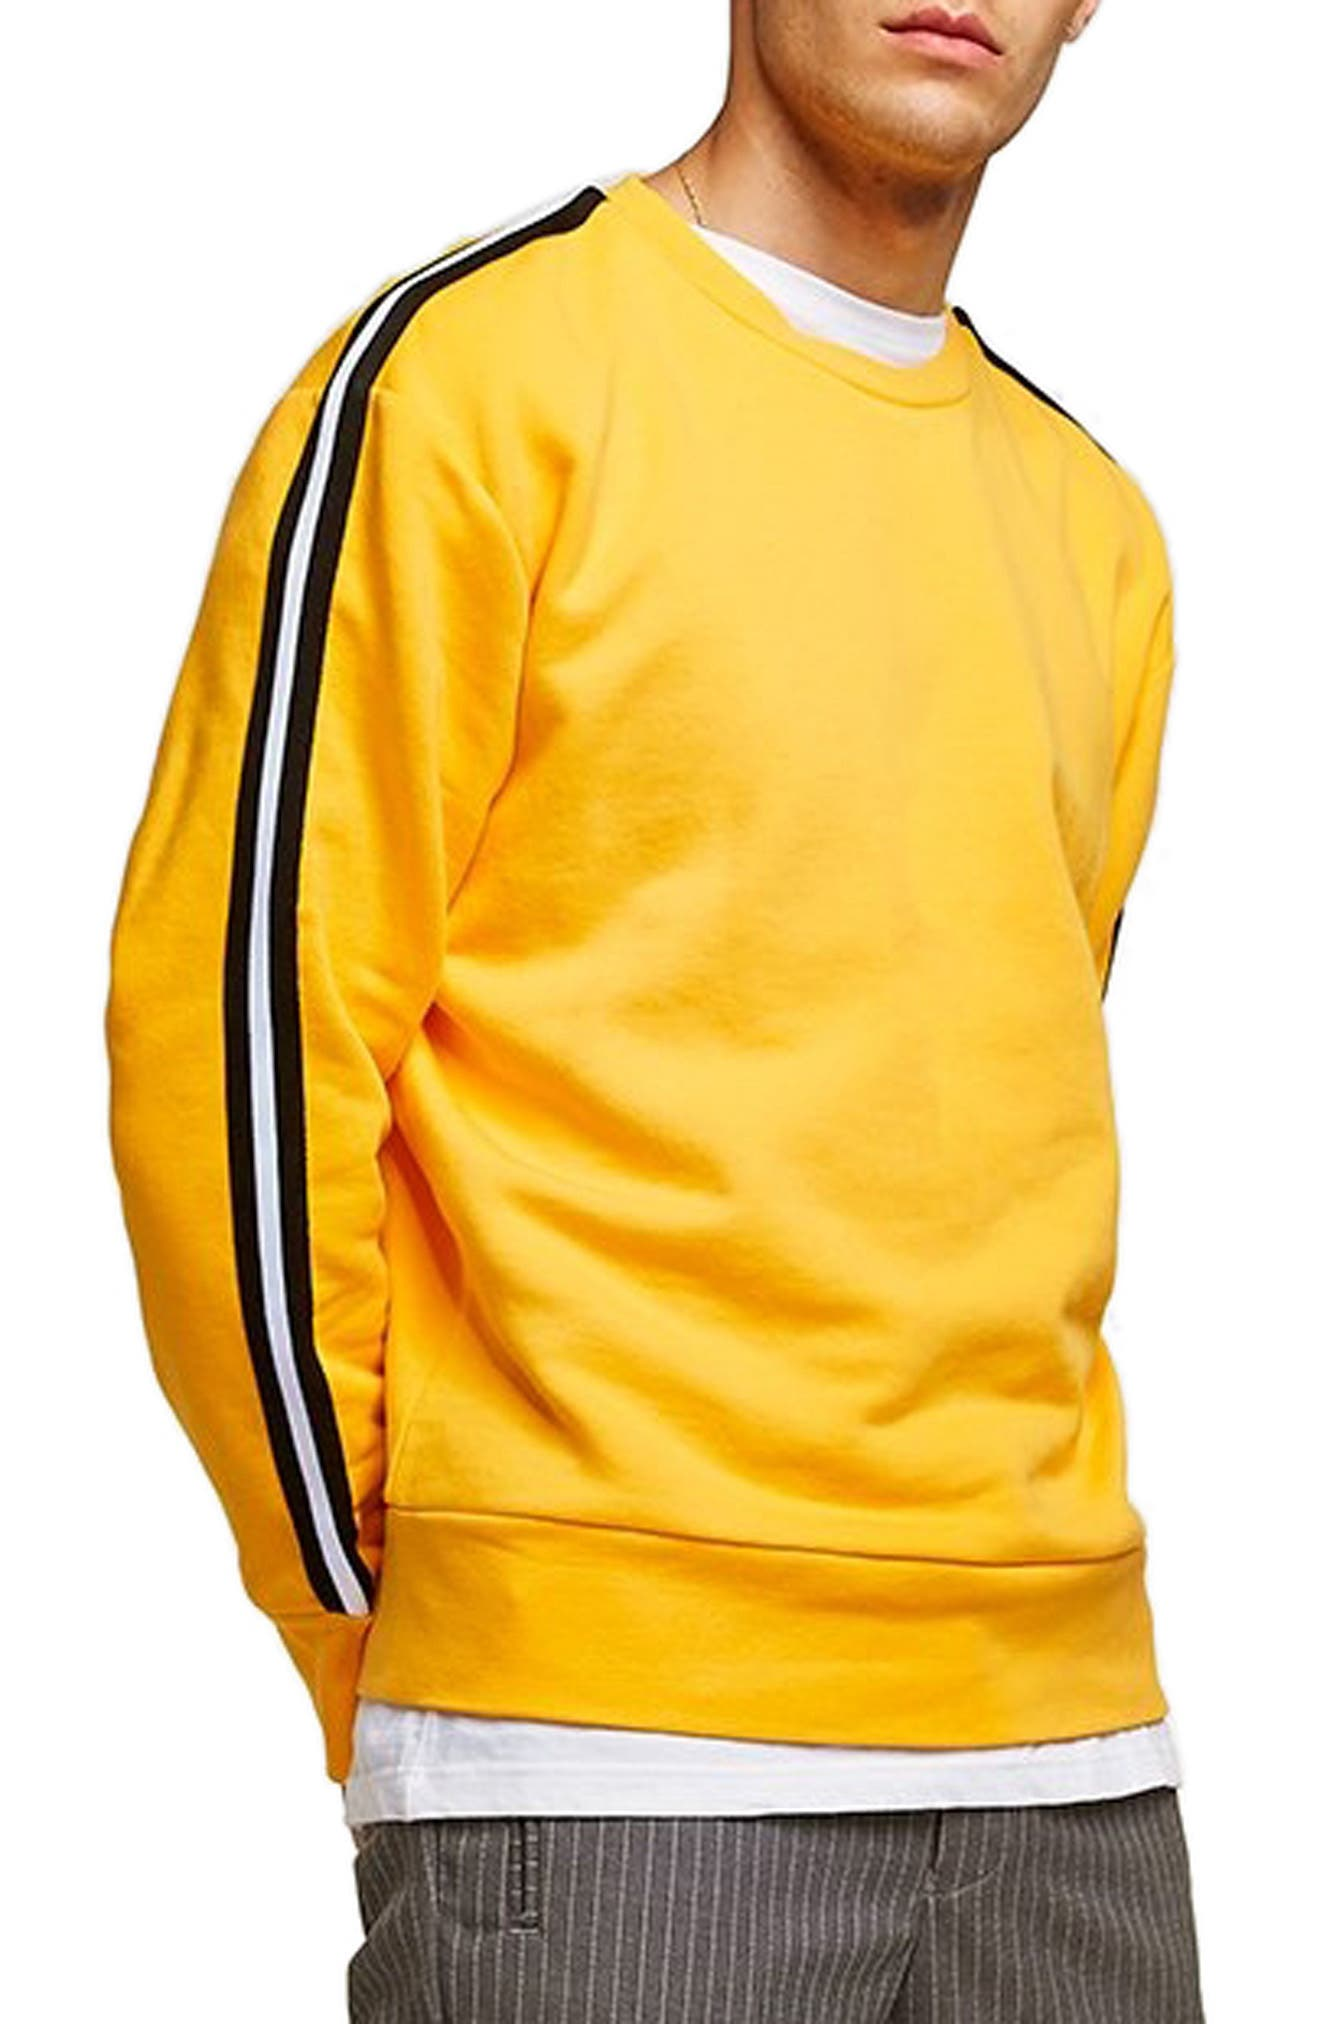 Taped Classic Fit Sweatshirt,                         Main,                         color, 700